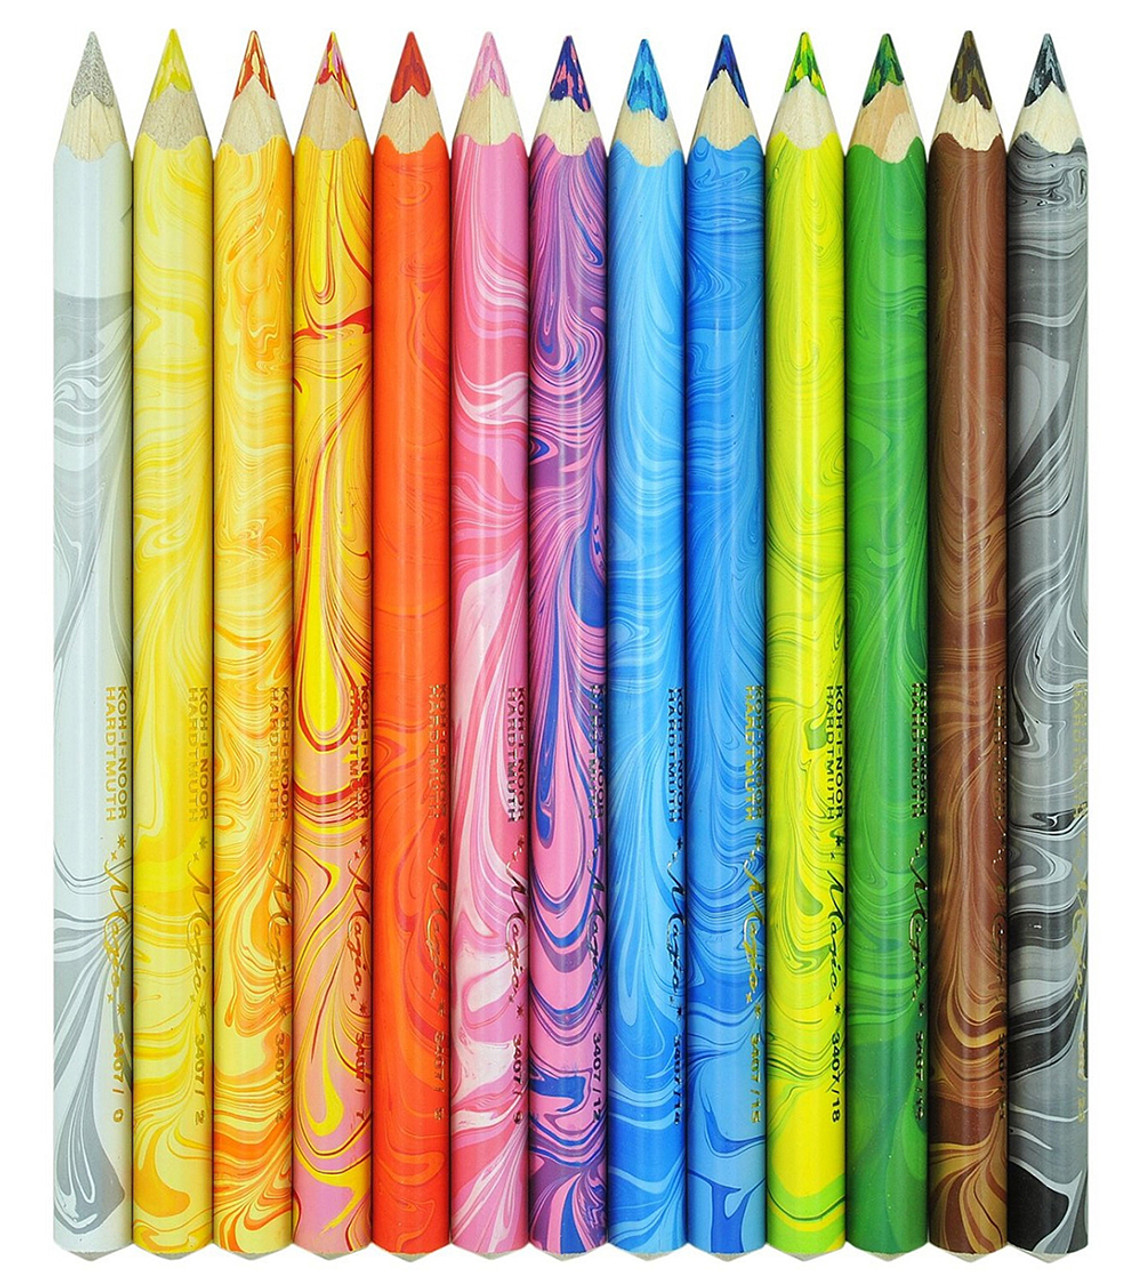 Koh-I-Noor 3408 Magic Jumbo triangular coloured pencils